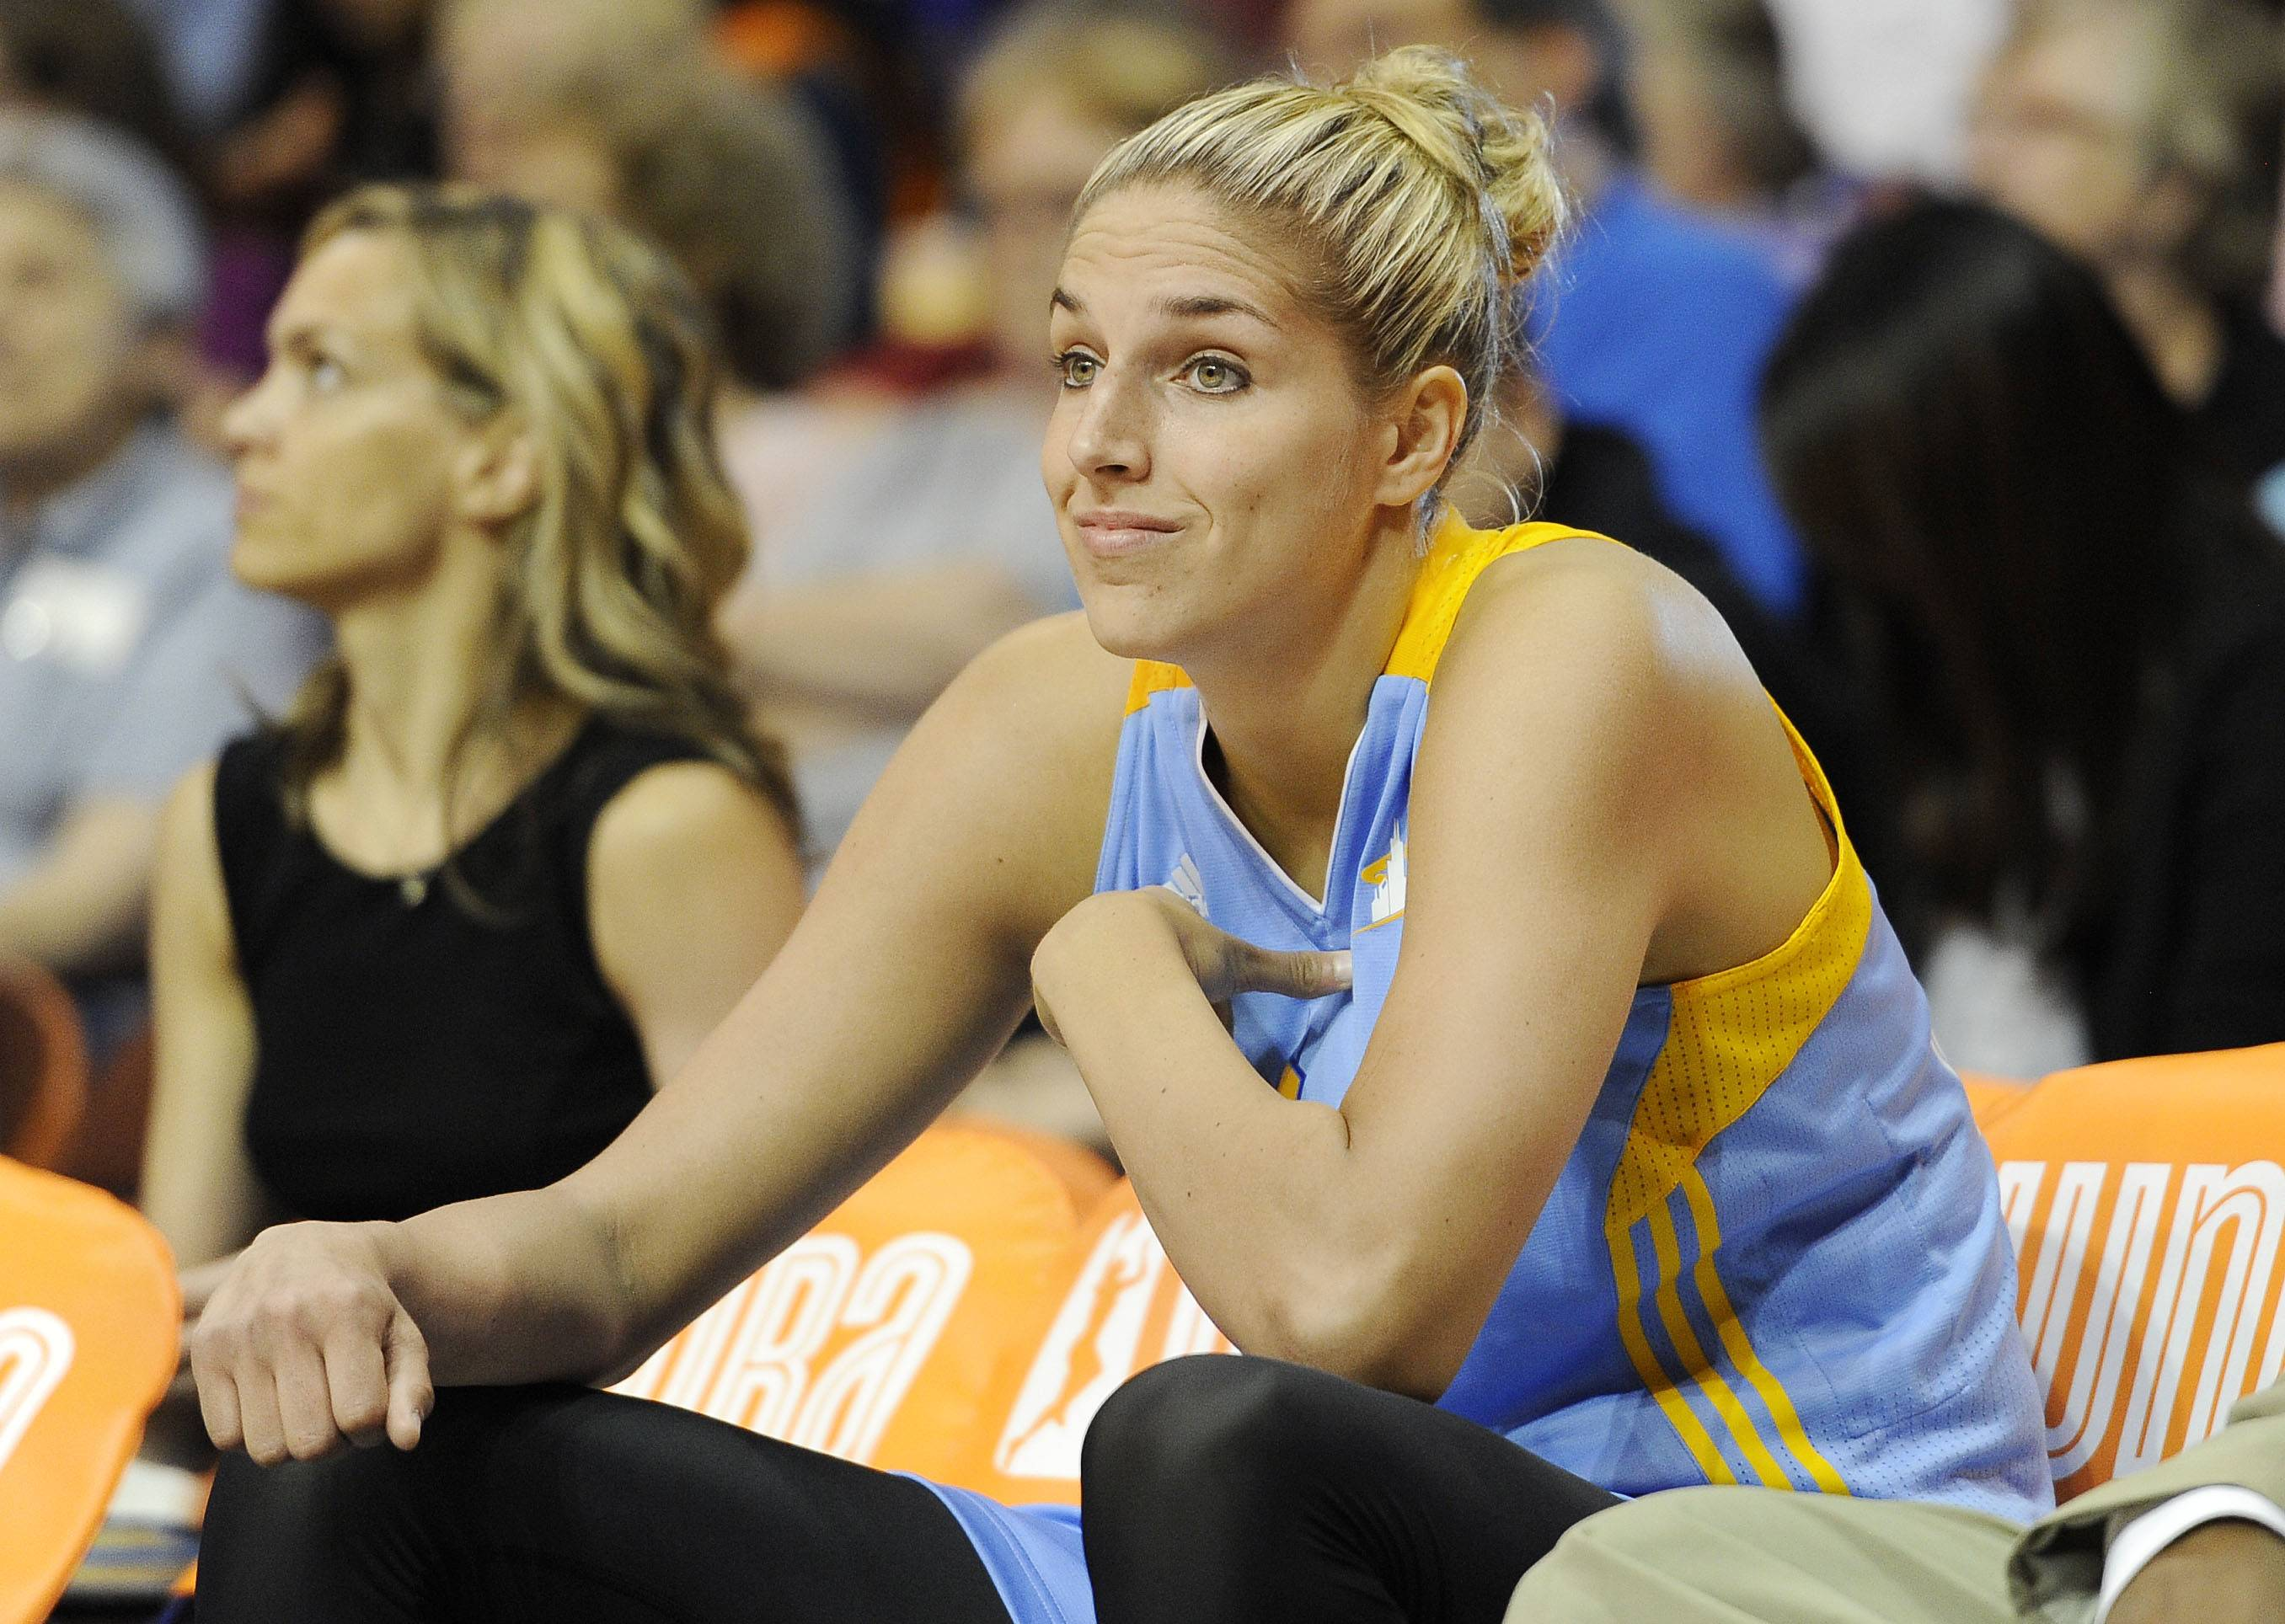 After missing 17 games this season to receive treatment for Lyme disease, Chicago Sky forward Elena Delle Donne has returned to WNBA action. She played 10 minutes Thursday night.